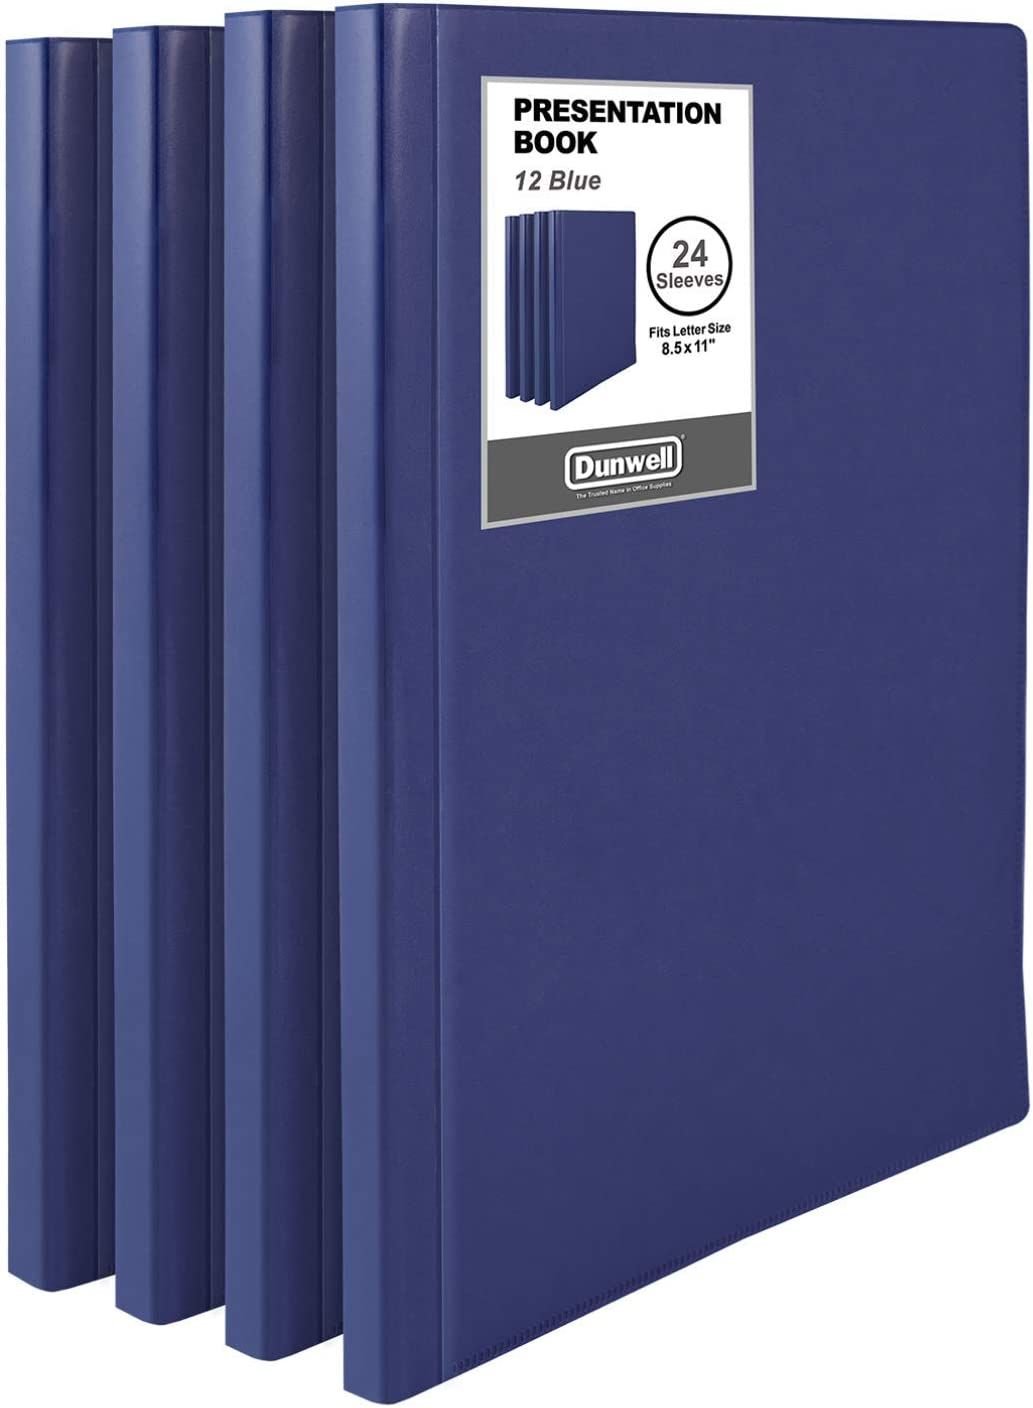 """Dunwell Binder swith Plastic Sleeves - (Navy Blue, 12 Pack), 24-Pocket Bound Presentation Books with Clear Sleeves, Displays 48 Pages of 8.5x11"""" Inserts, Sheet Protector Binders, Portfolio Folders"""